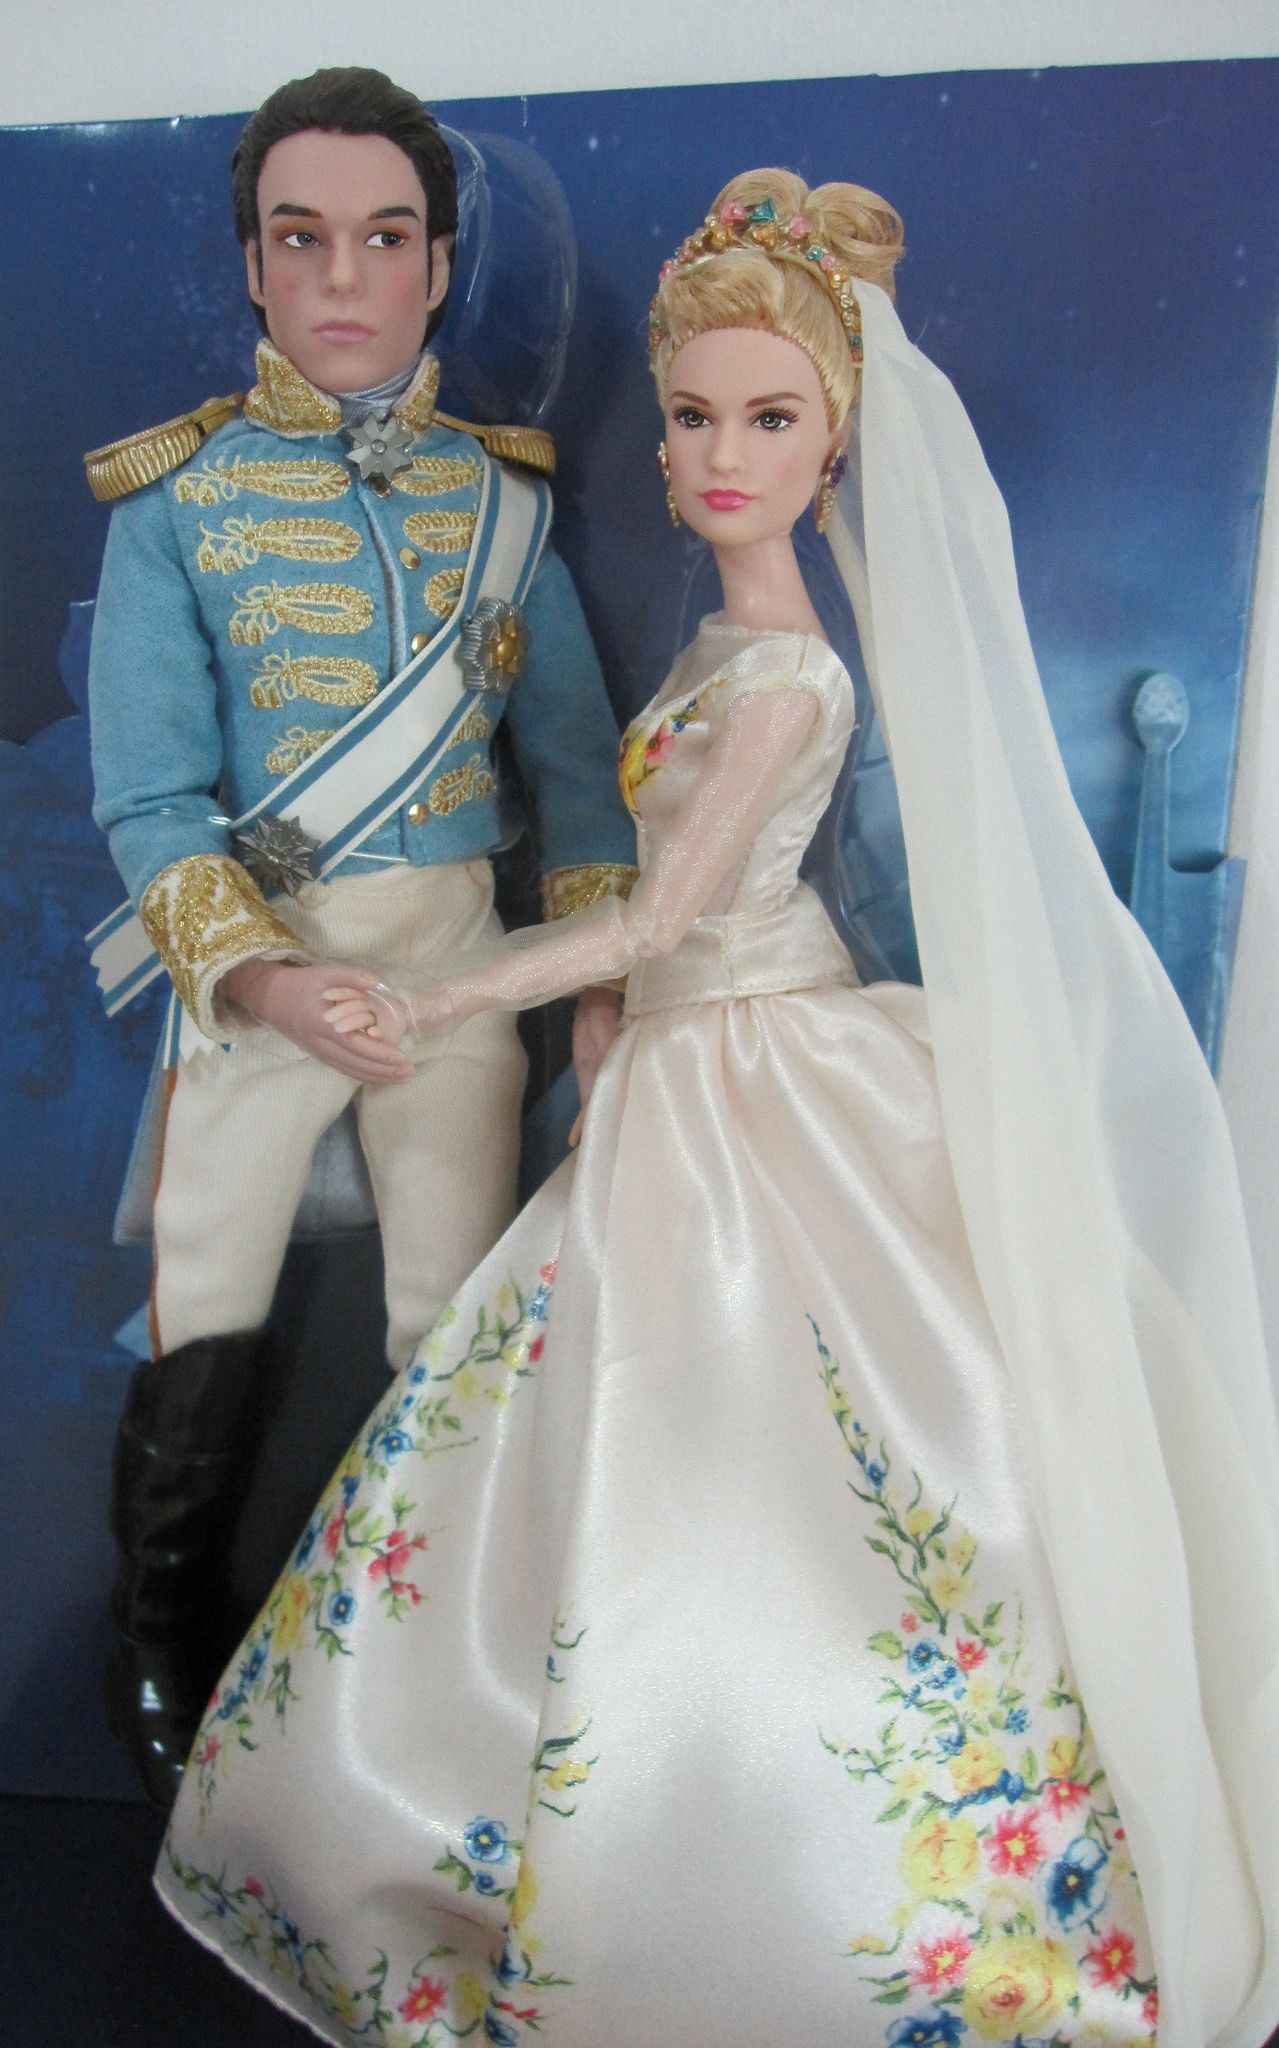 Disney Beauty and the Beast Royal Celebration Belle Prince 2 Pack Doll Gift Set!